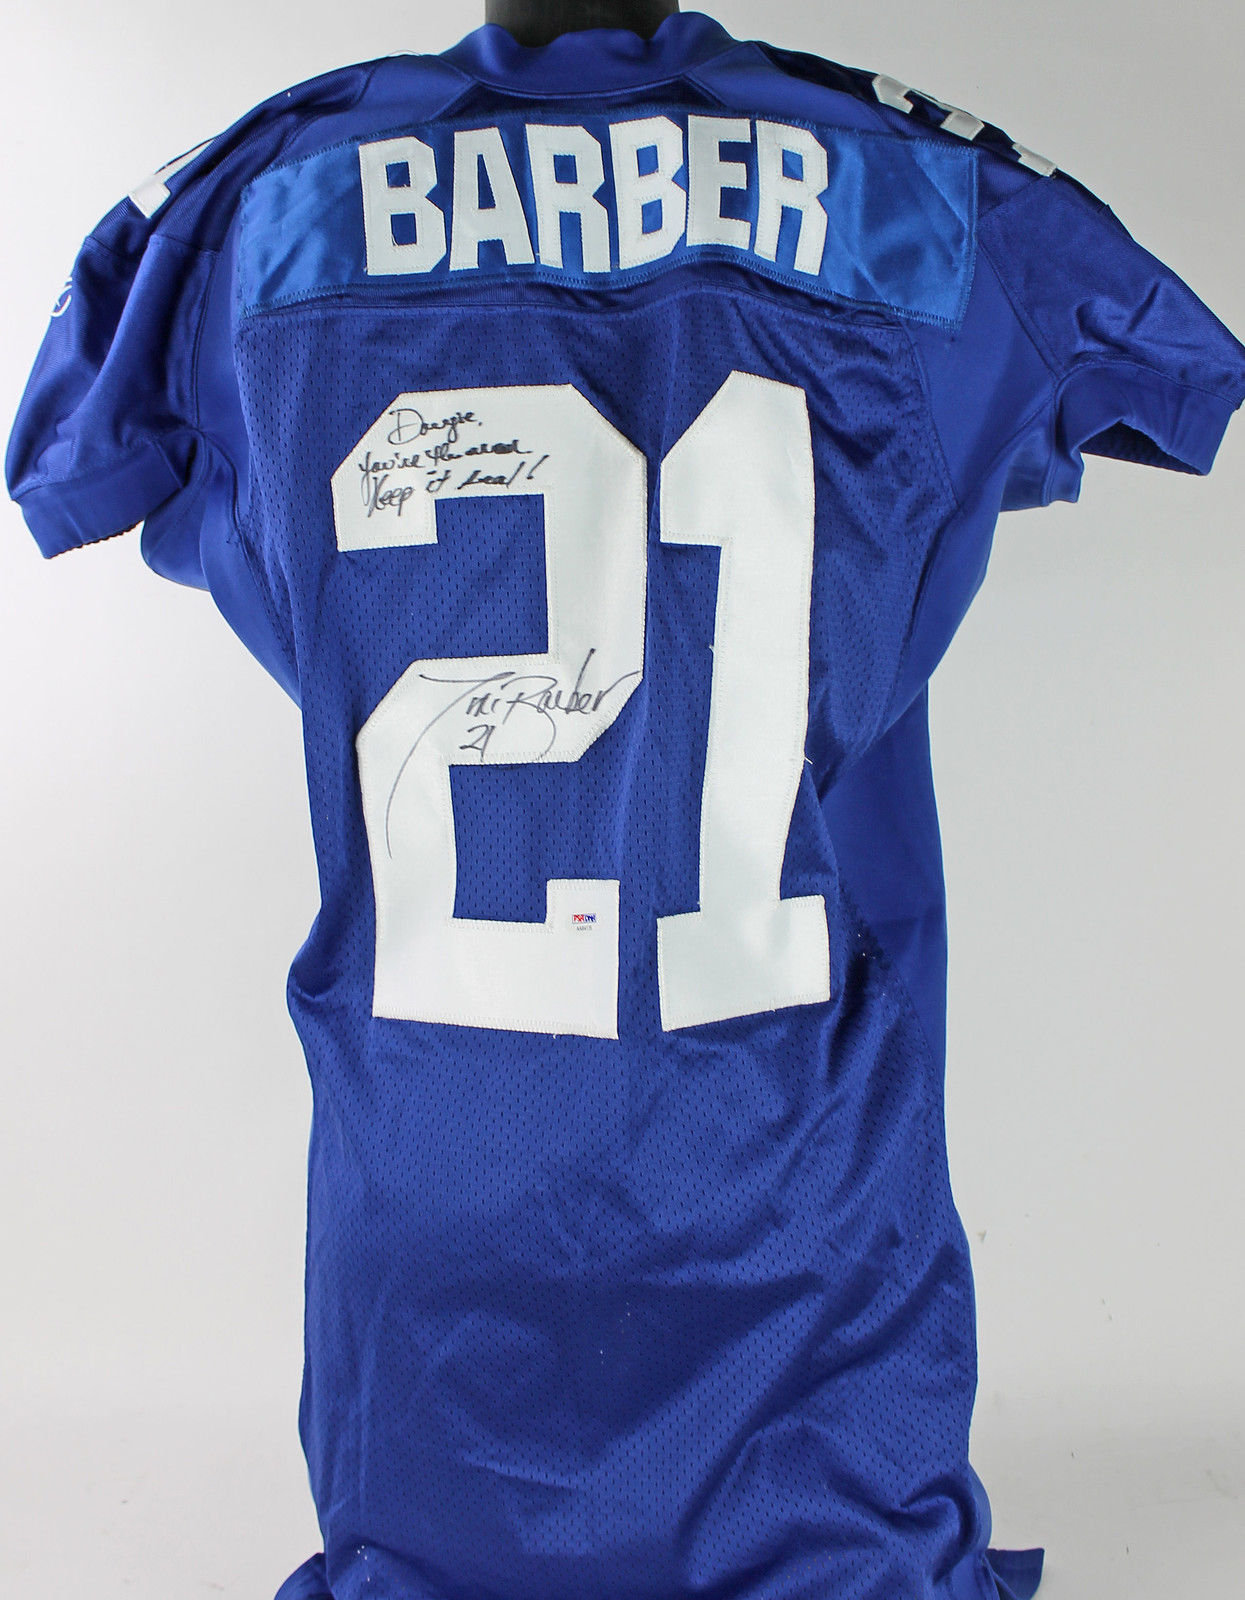 Barber Tiki : Lot Detail - NY Giants: Tiki Barber Game Used & Signed Jersey (PSA/DNA ...